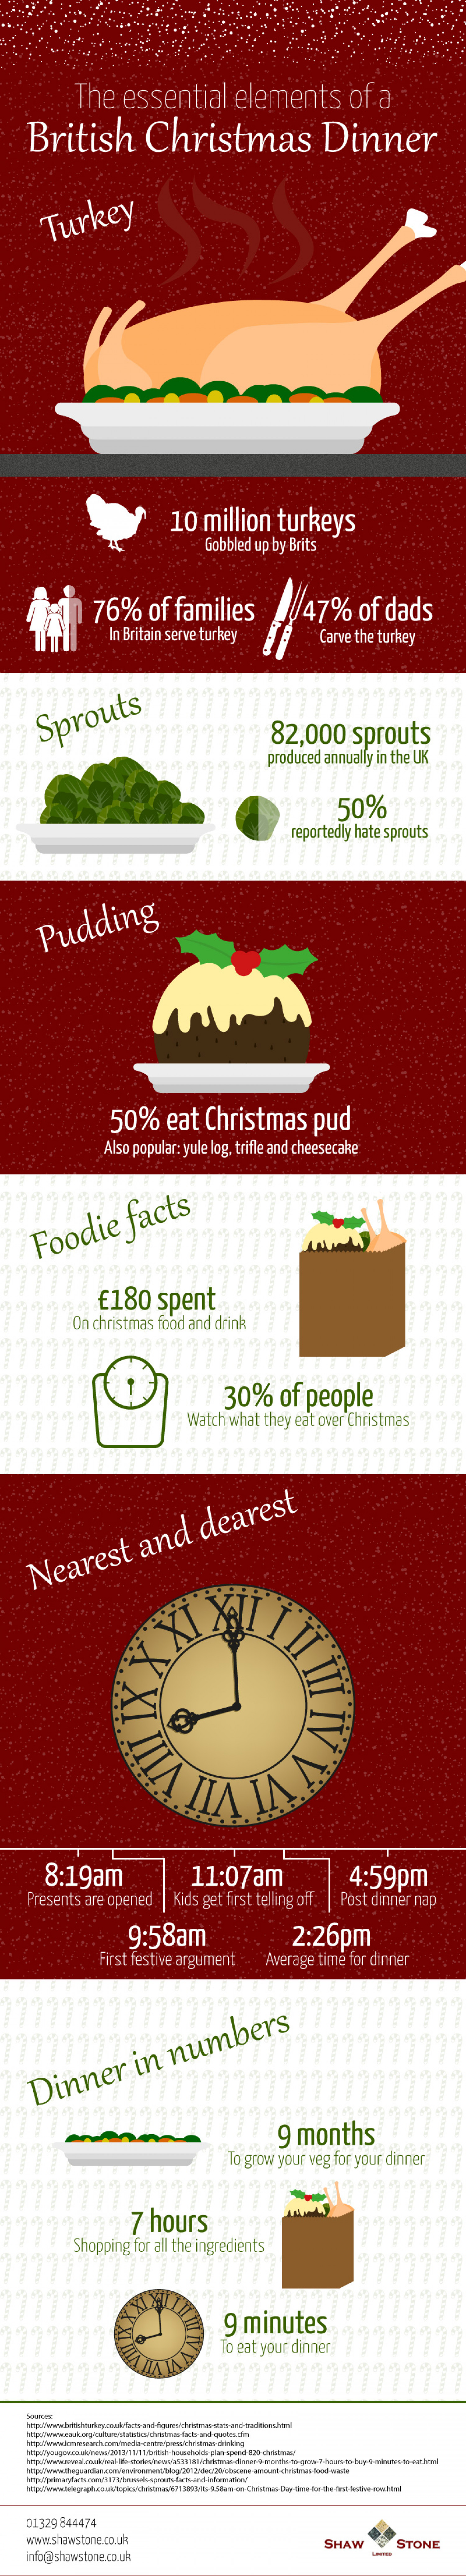 The essential elements of a British Christmas dinner Infographic